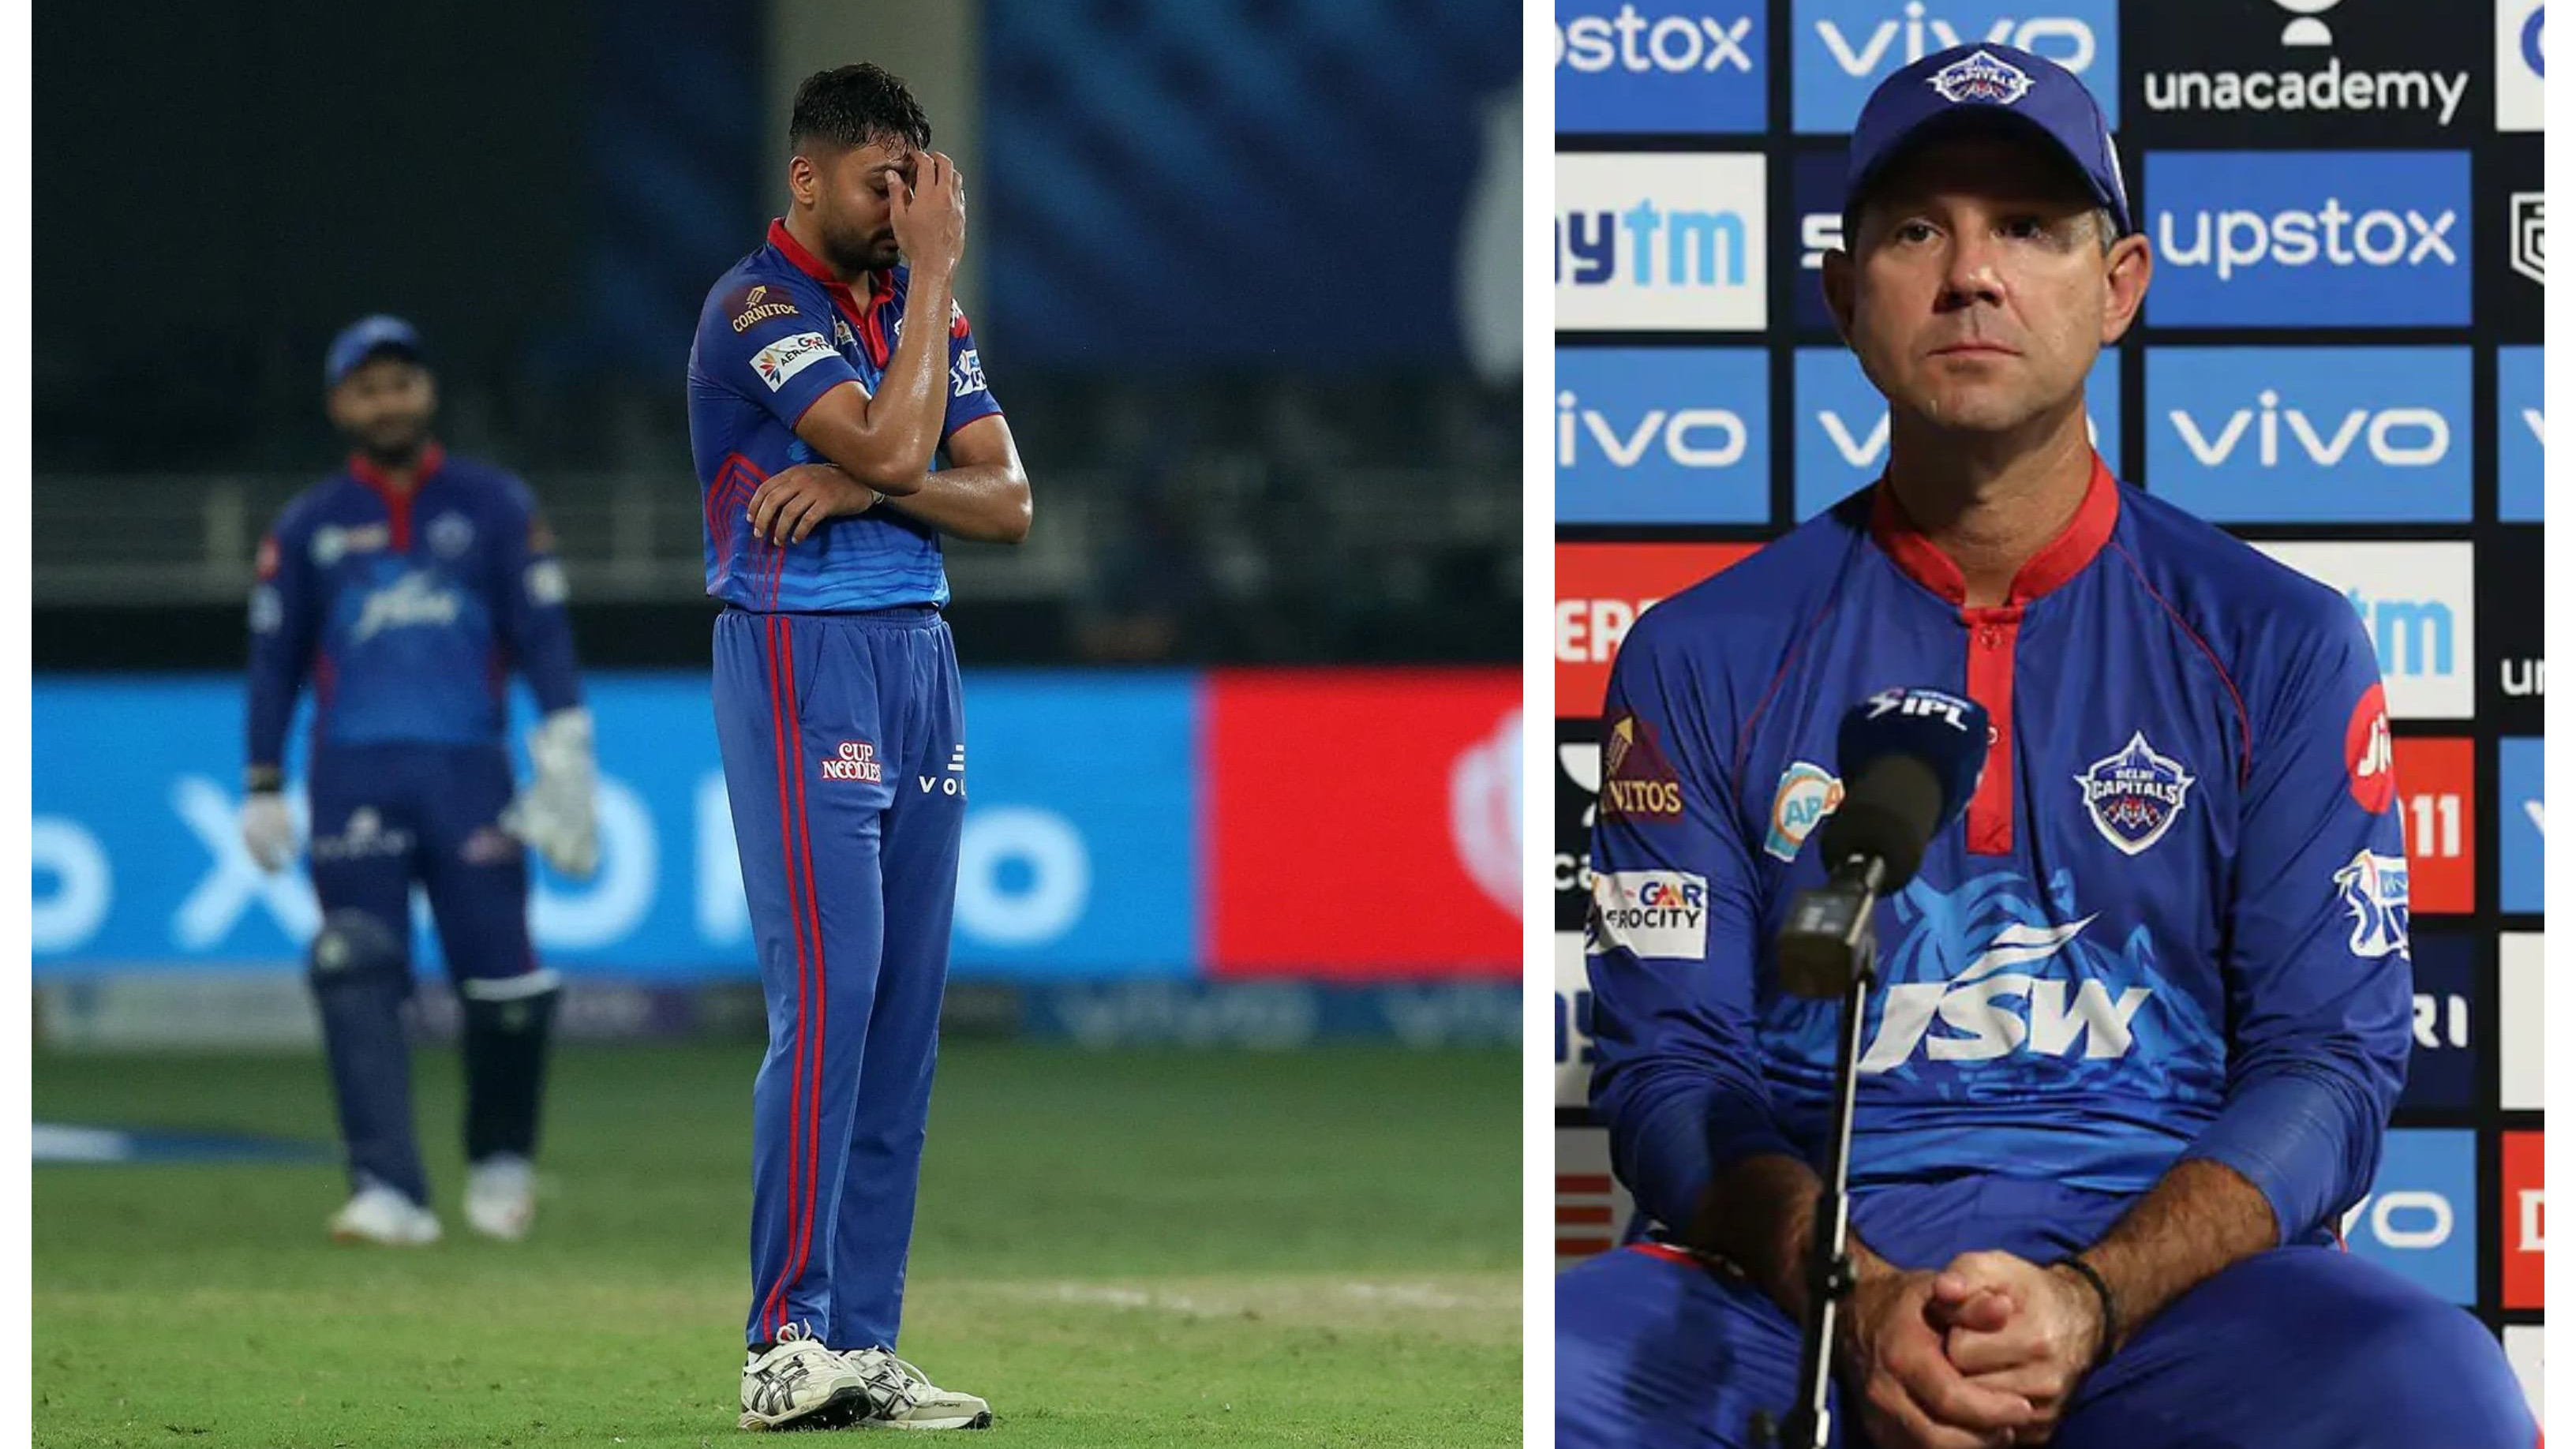 IPL 2021: Defeat against RCB will give the boys a chance to reflect and improve, says DC coach Ricky Ponting